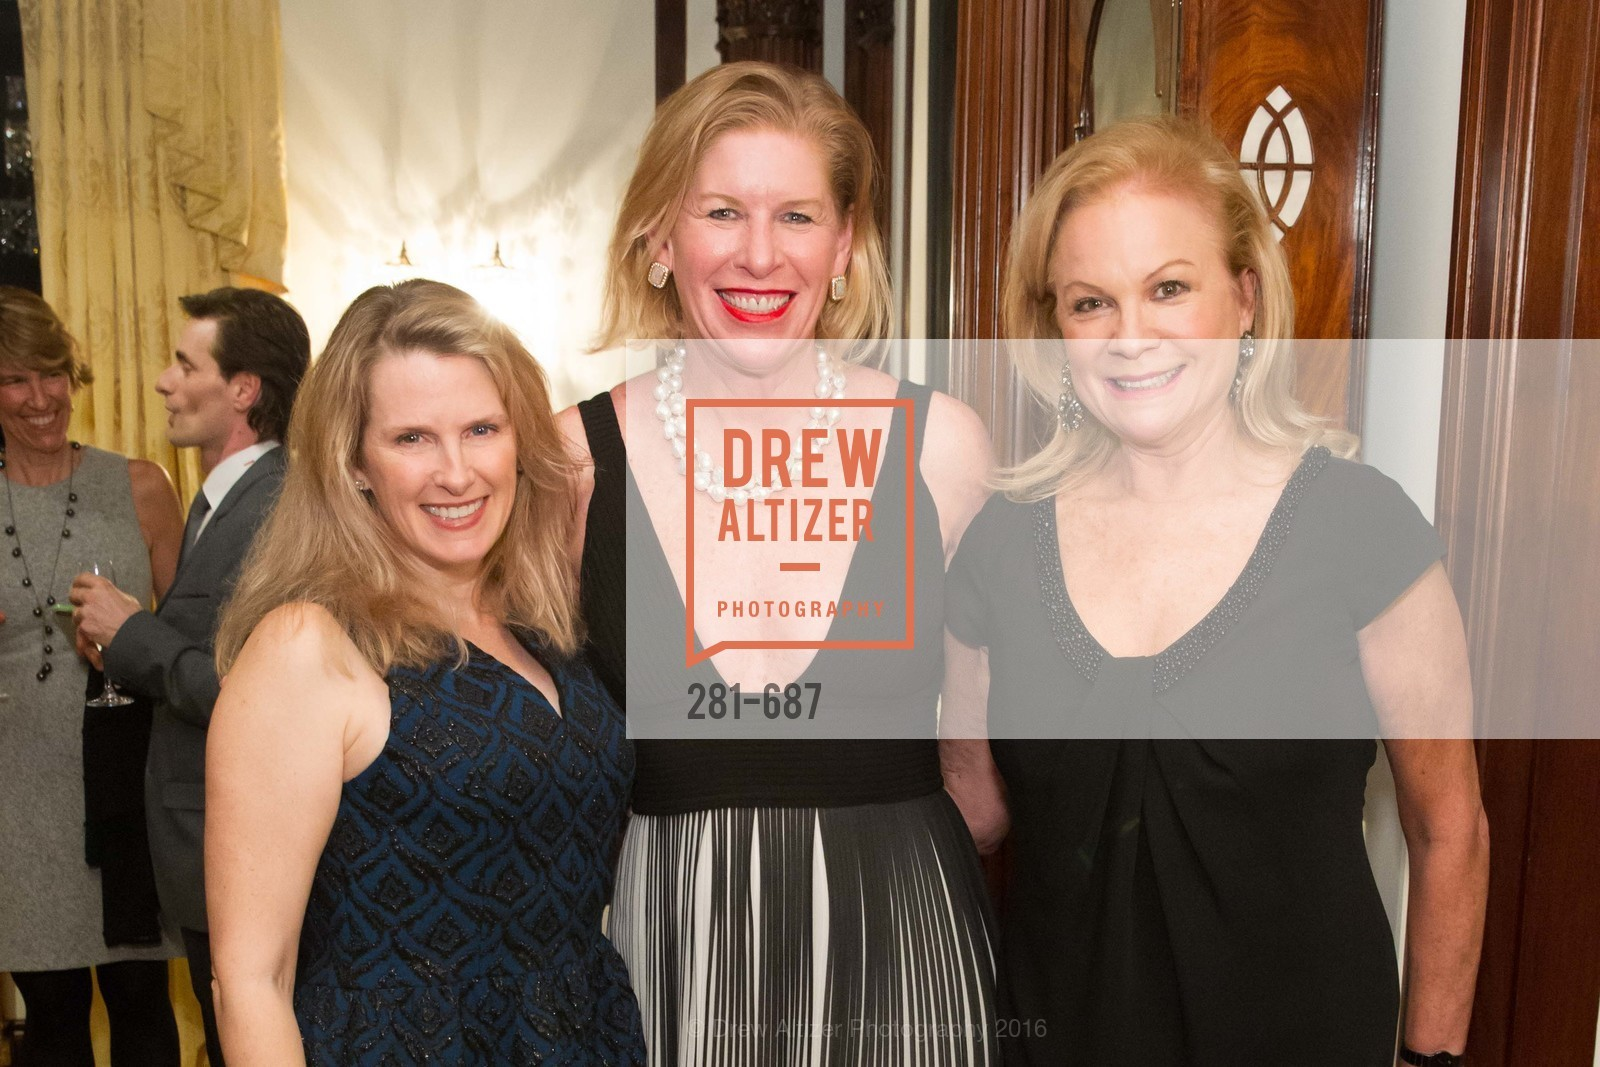 Marie Hurabiell, Jennifer Brandenburg, Claire Kostic, Benefactor Party for the 2016 Ballet Gala, Private Residence, January 14th, 2016,Drew Altizer, Drew Altizer Photography, full-service agency, private events, San Francisco photographer, photographer california